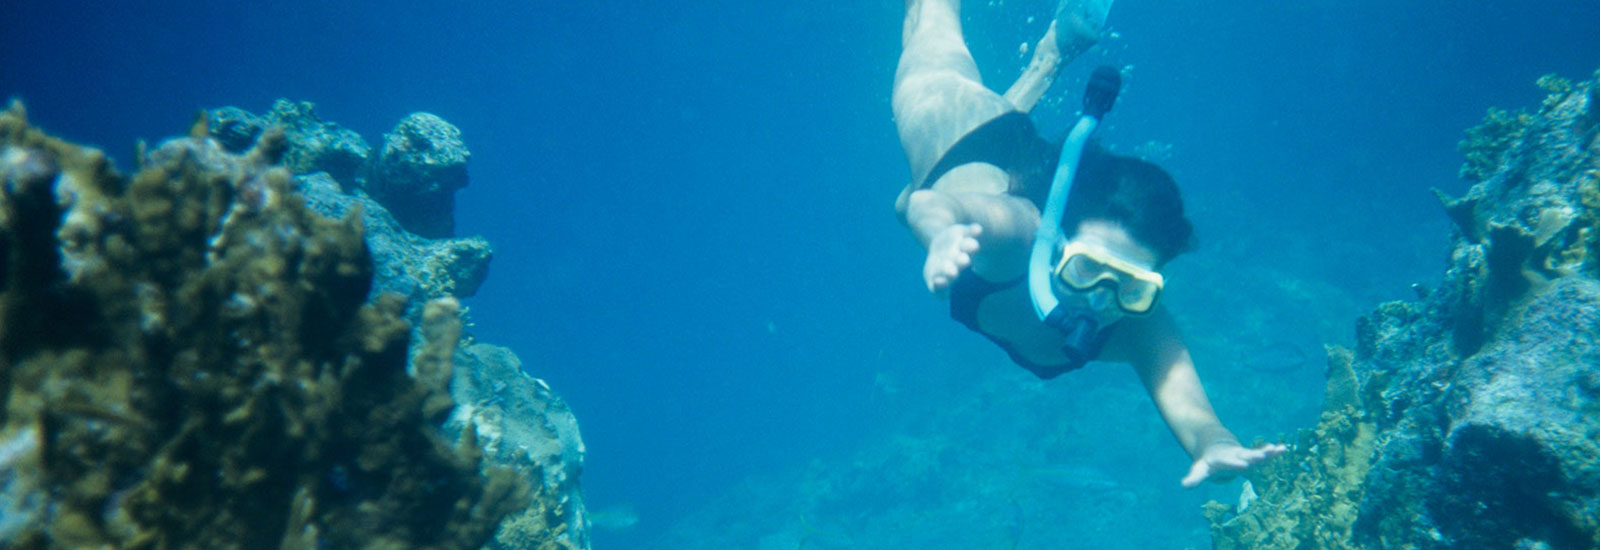 Snorkeling at Cabo Pulmo of Mexico